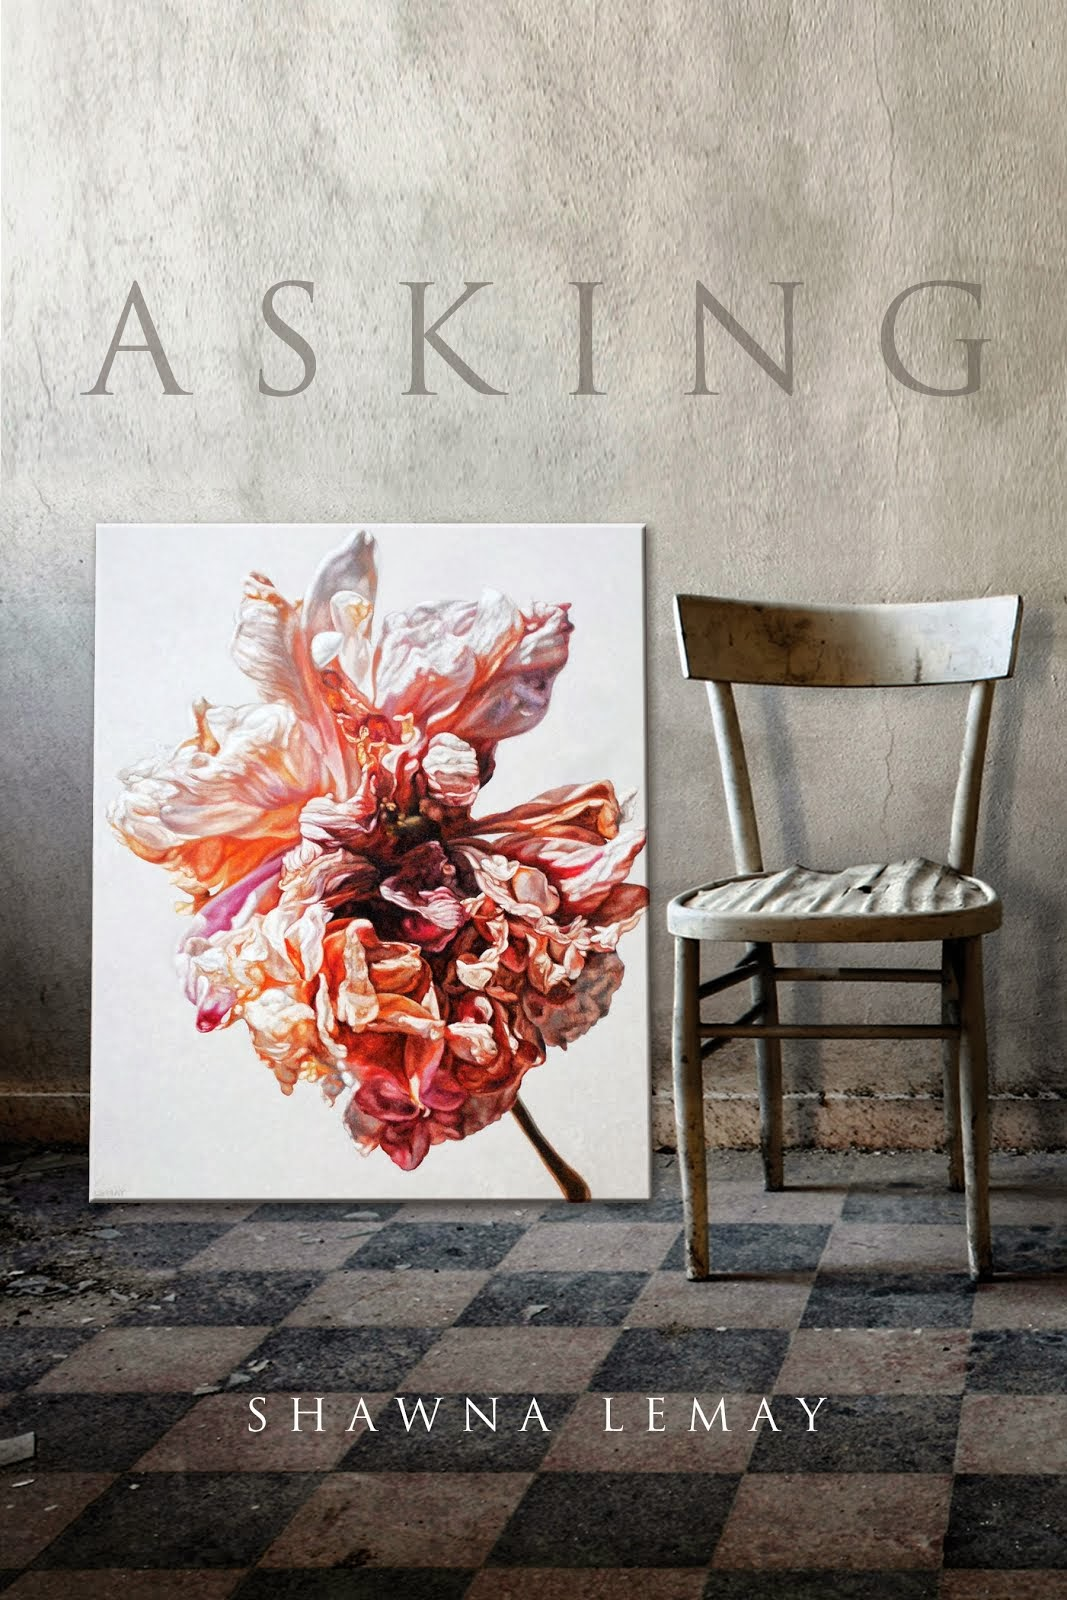 Asking: Poem Essays